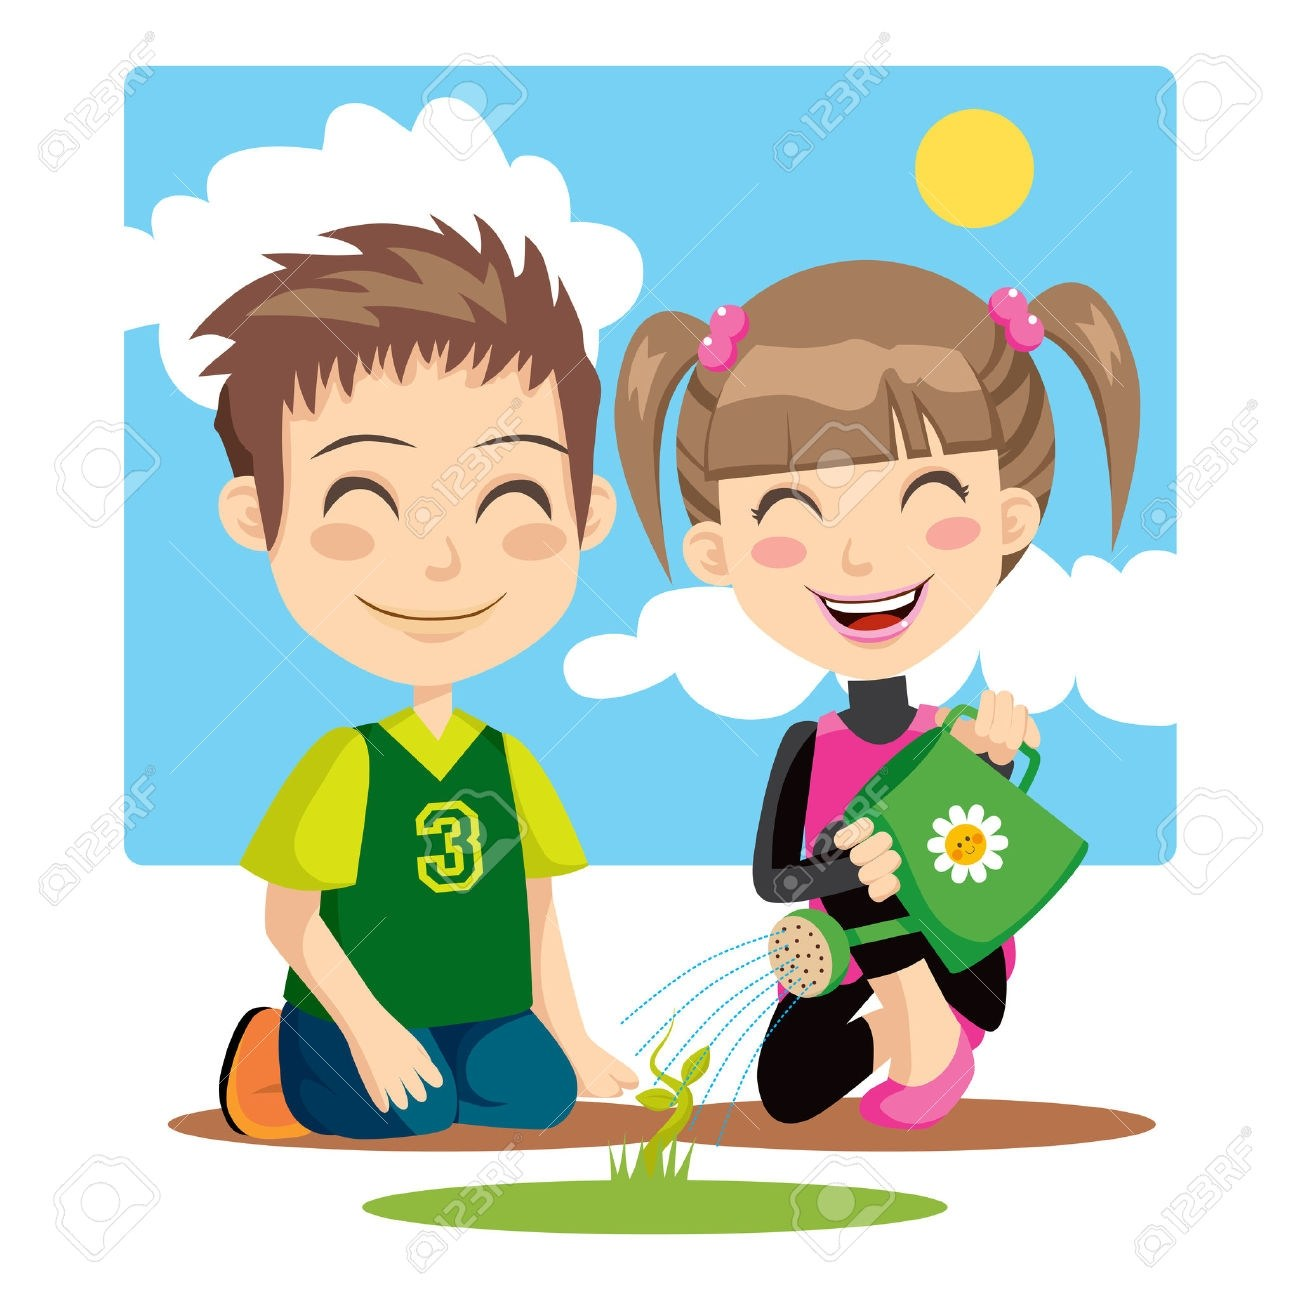 Kids planting flowers clipart picture library stock Kids planting flowers clipart 5 » Clipart Portal picture library stock